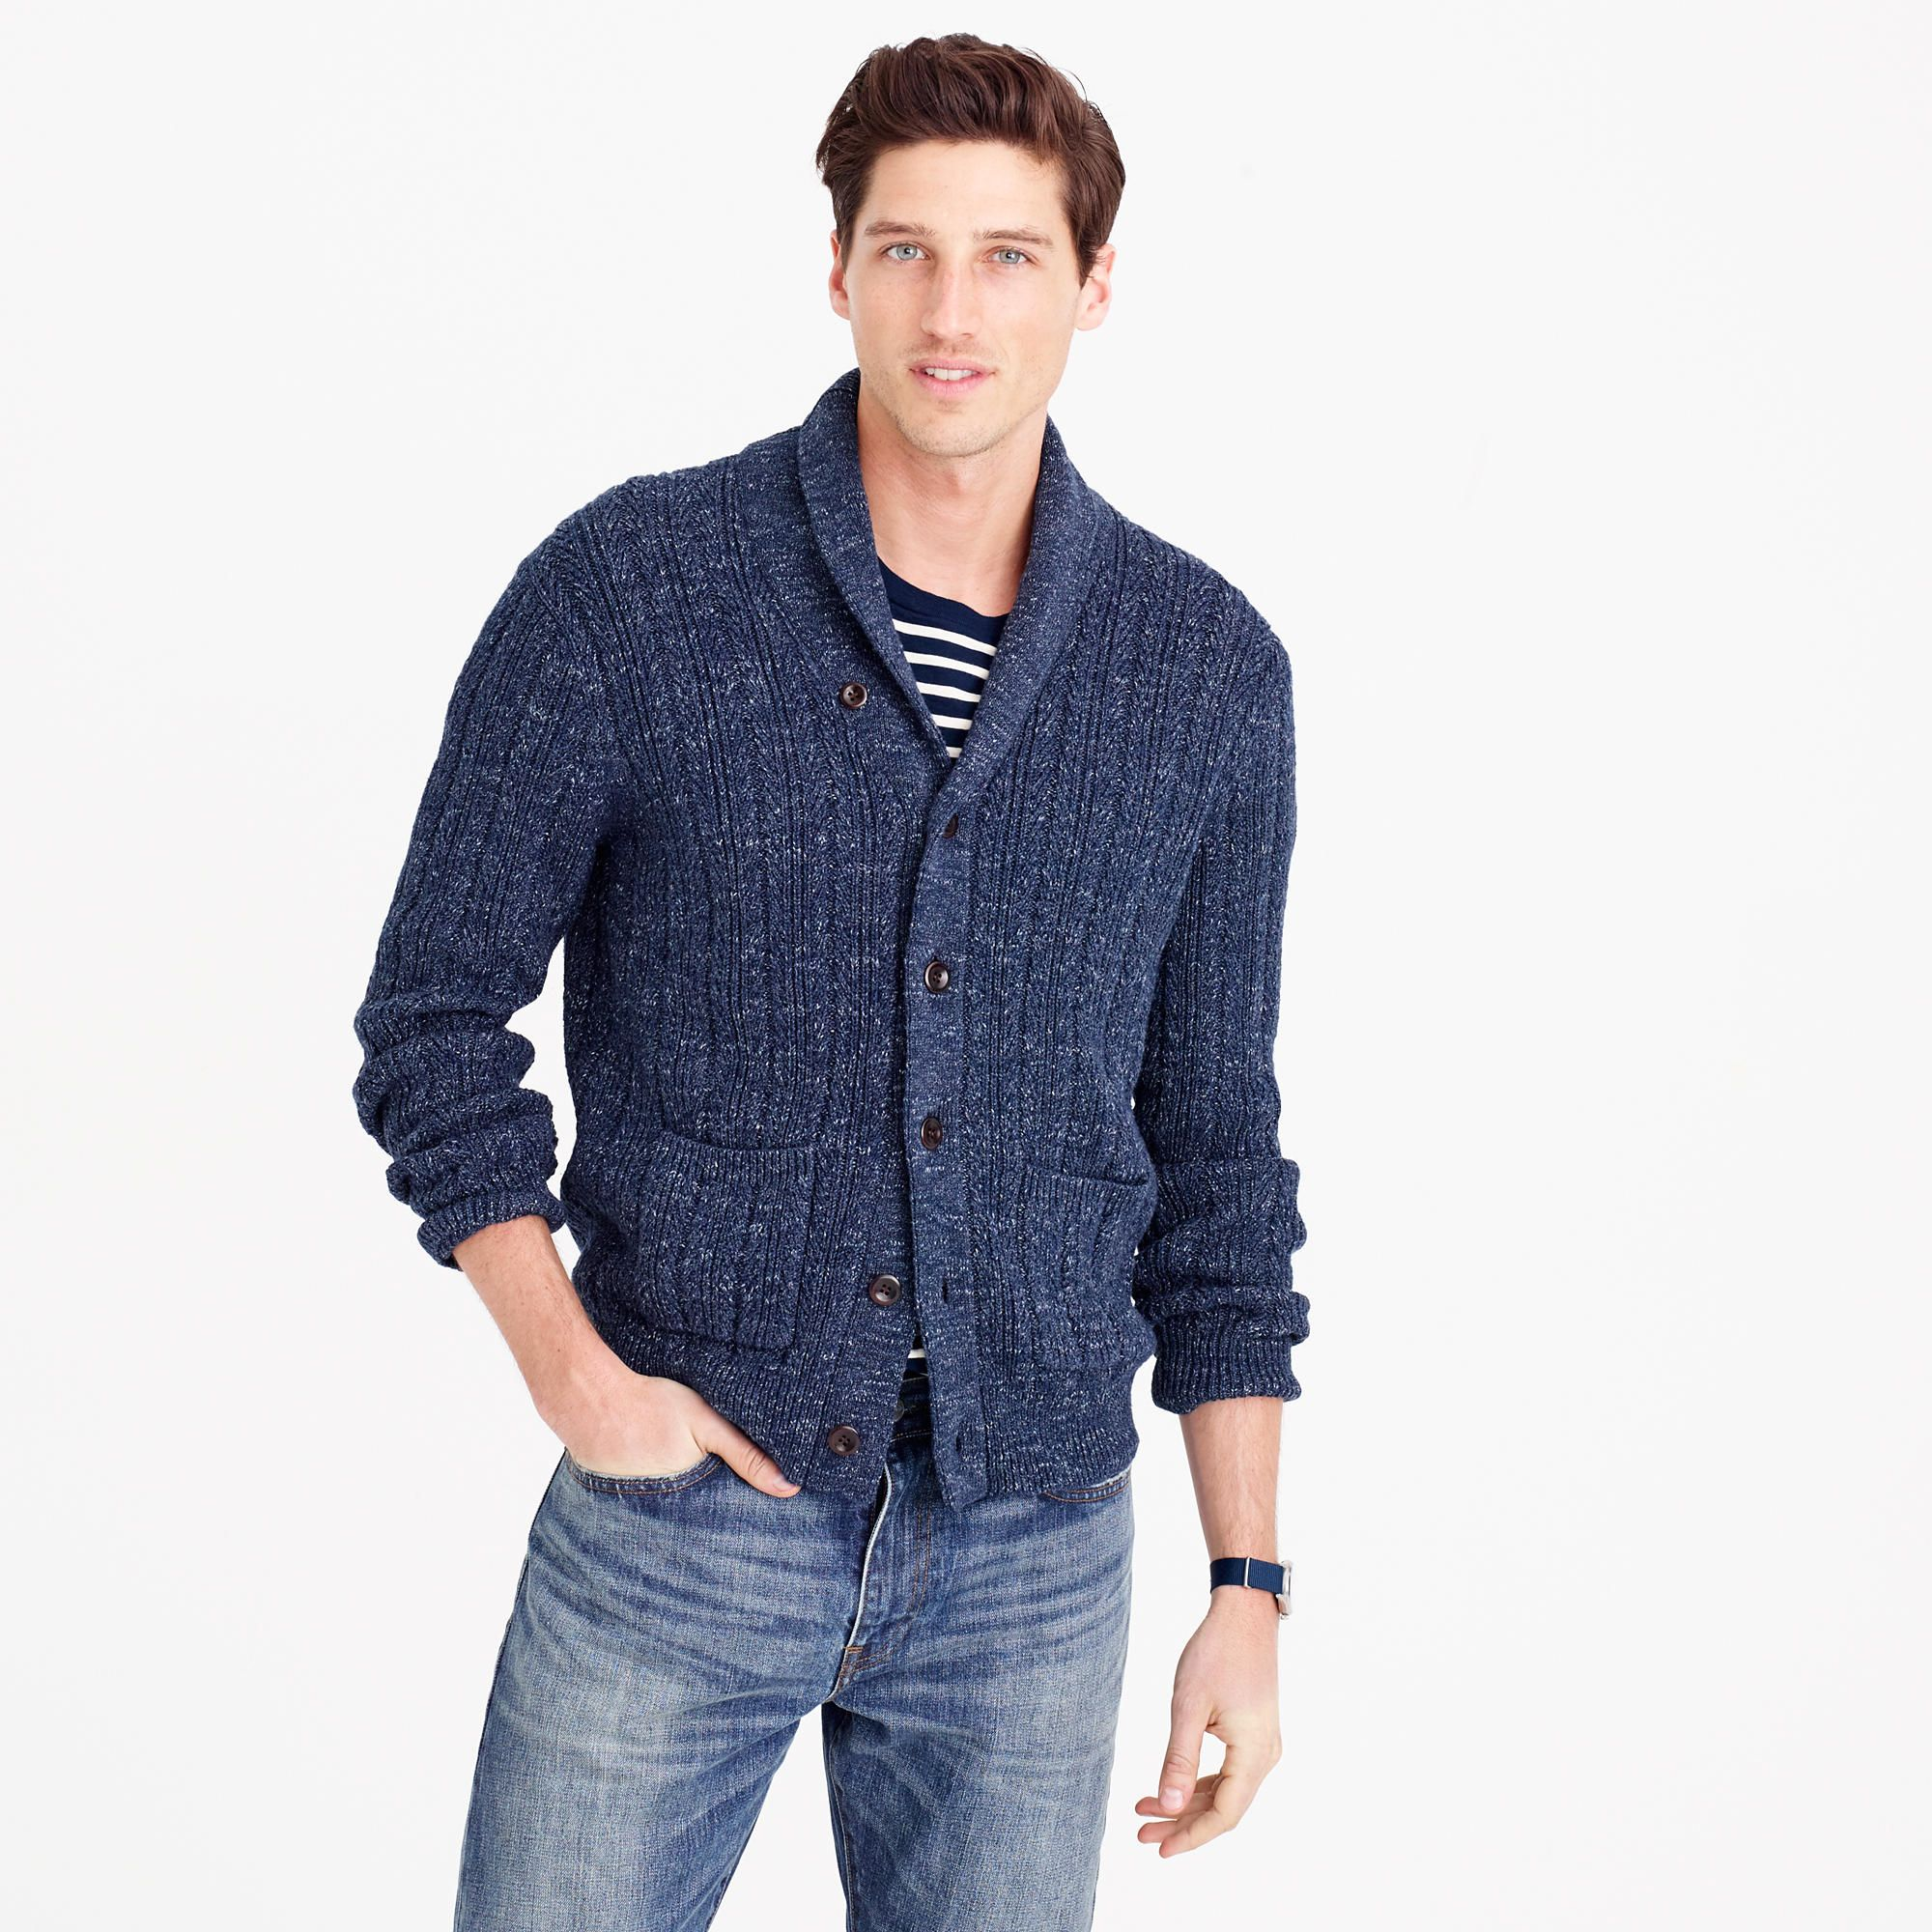 Cotton Mariner Shawl-Collar Cardigan Sweater : Men's Sweaters | J ...